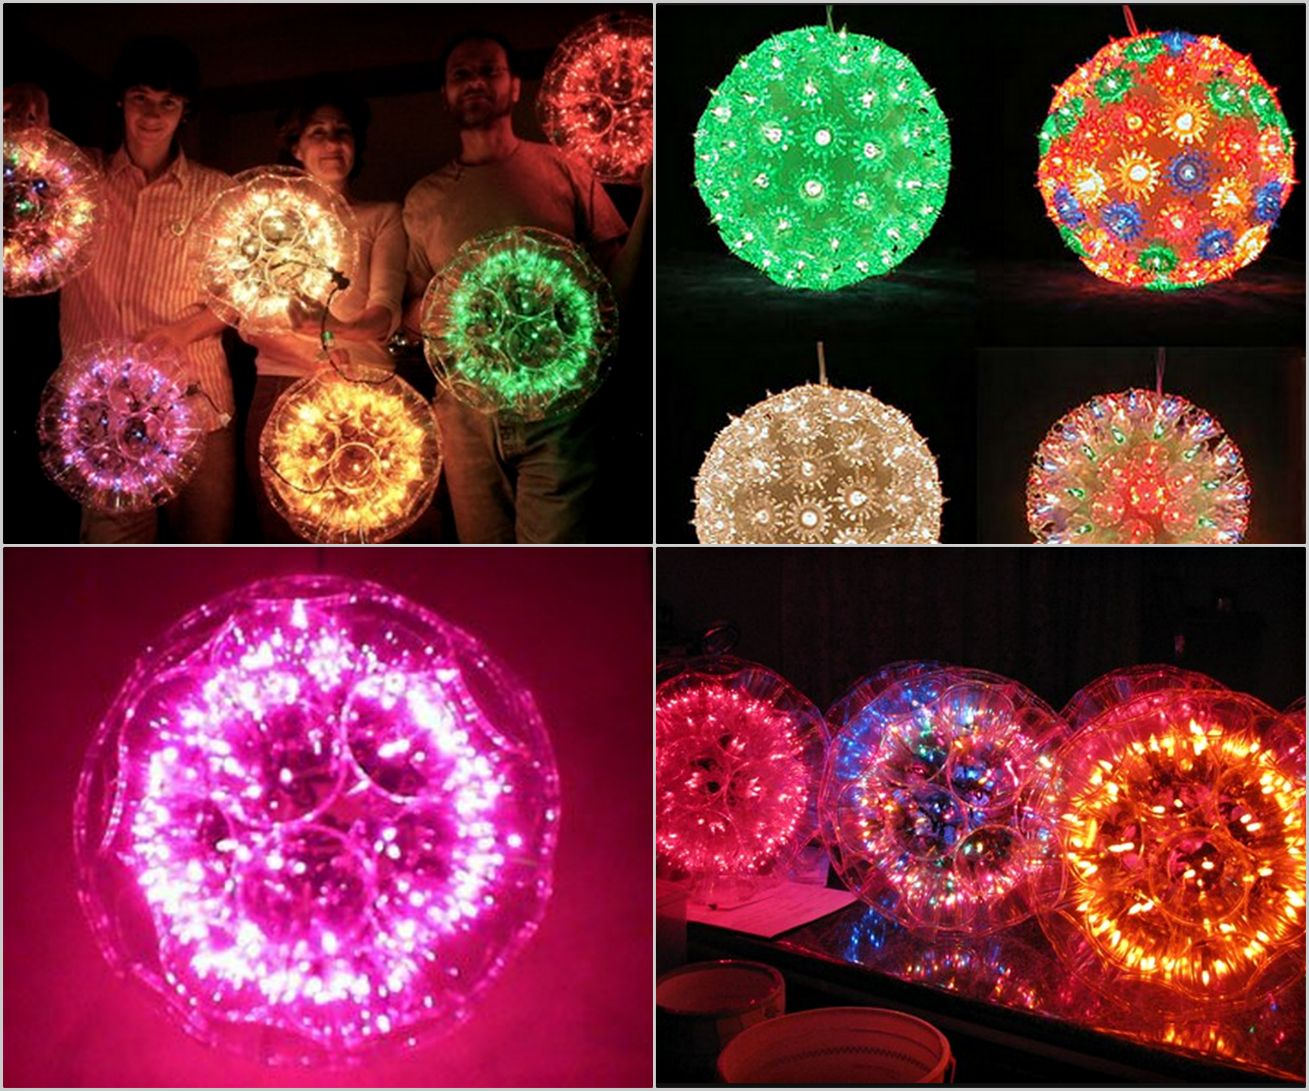 Diy sparkle ball with string lights and plastic cups plastic cups diy sparkle ball with string lights and plastic cups arubaitofo Image collections